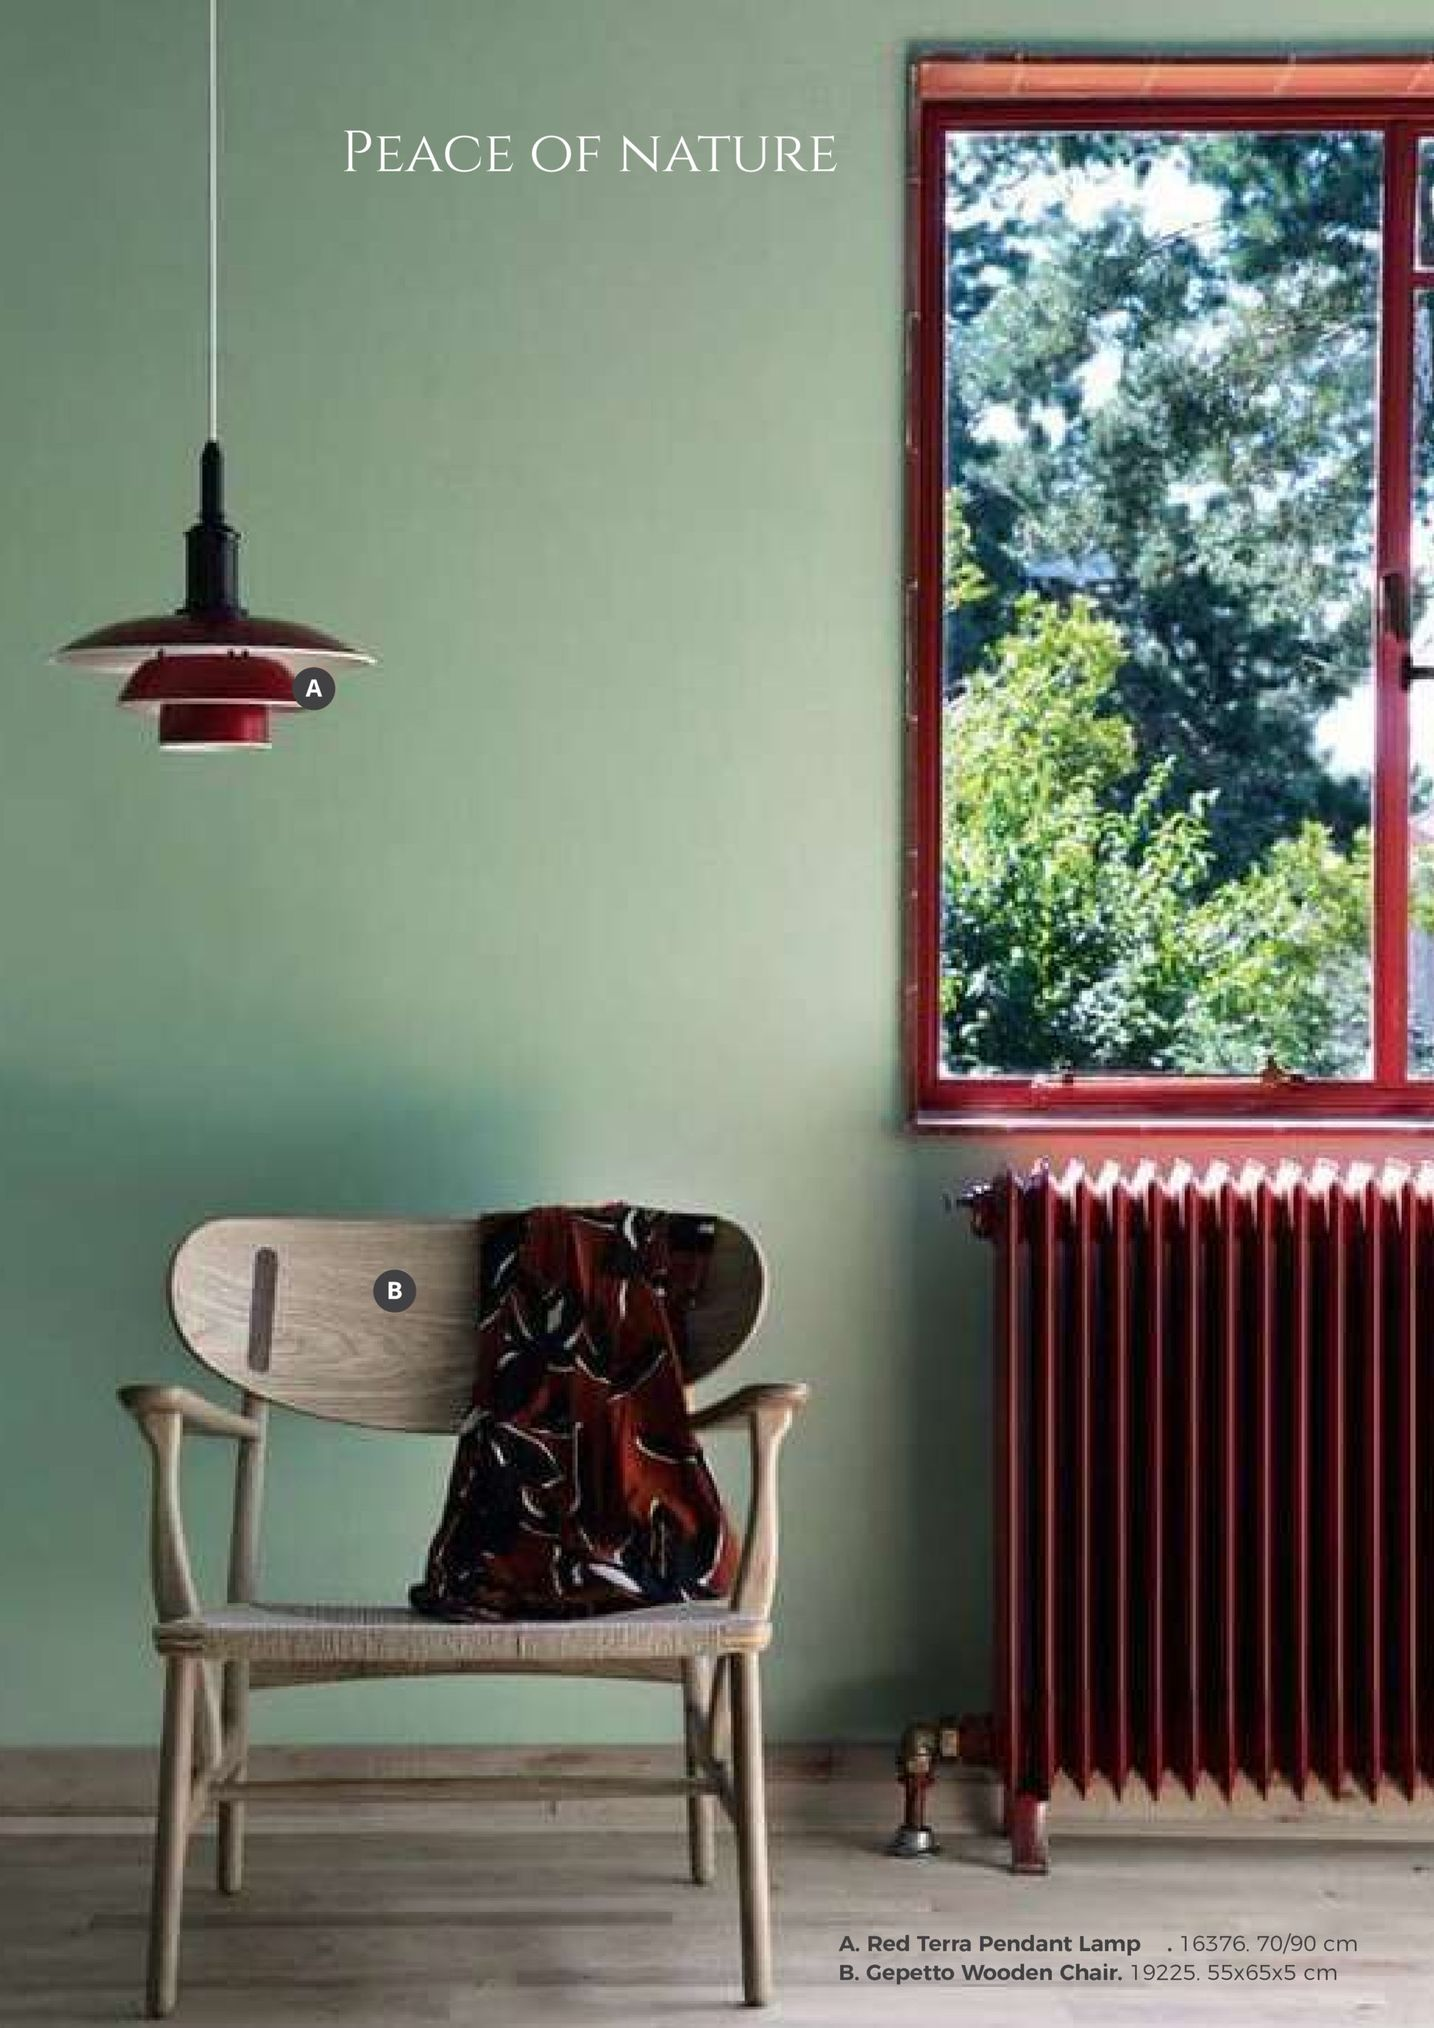 peace of nature a. red terra pendant lamp .16376. 70/90 cm b. gepetto wooden chair. 19225. 55x65x5 cm